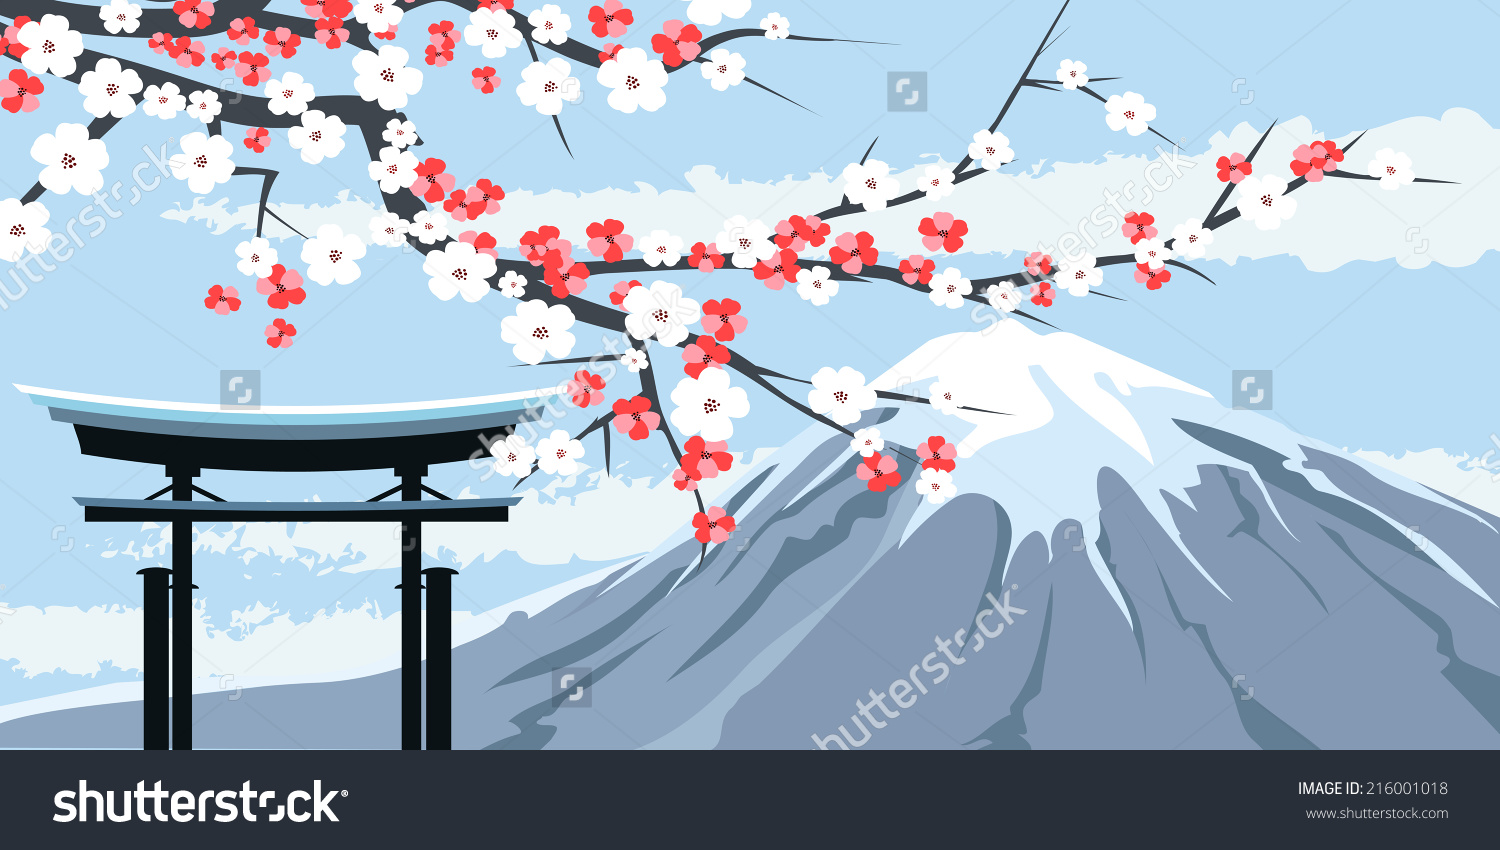 Graphic Illustration Mount Fuji Cherry Blossoms Stock Vector.